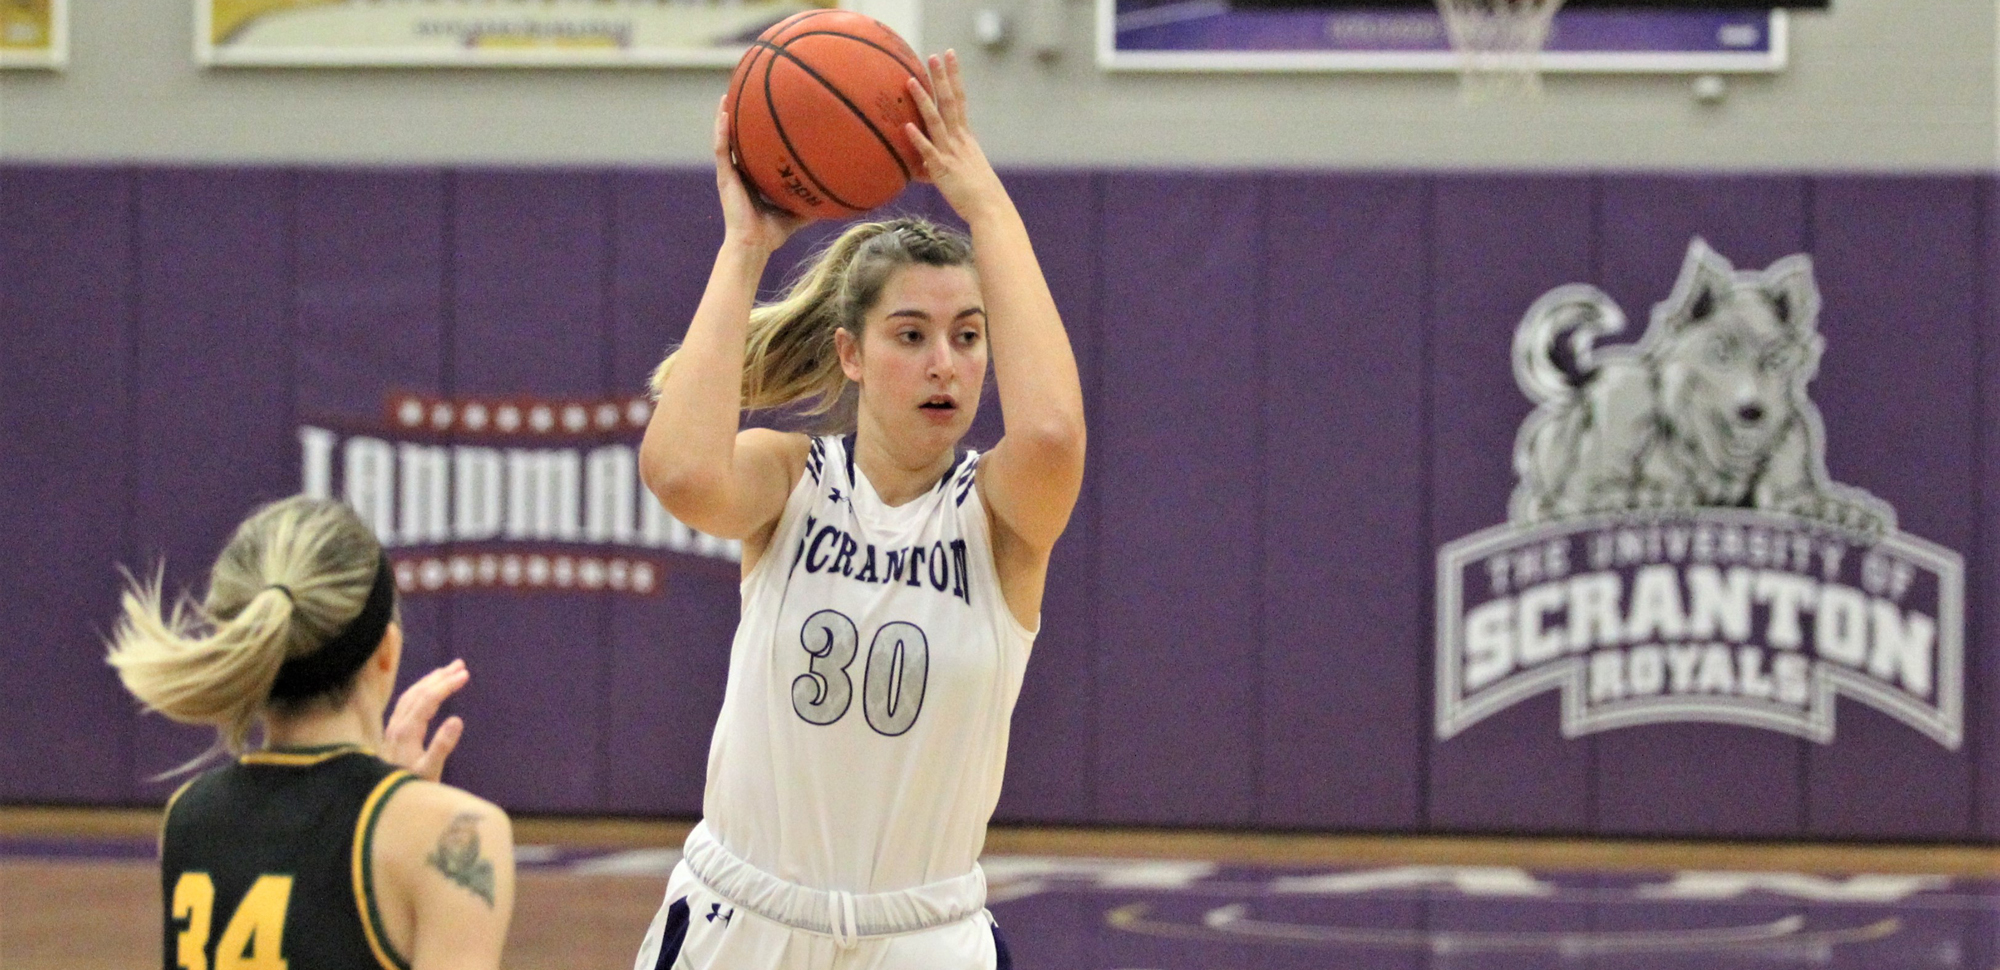 Senior Sofia Recupero recorded 12 points and a career-high 14 rebounds on Saturday at Catholic.